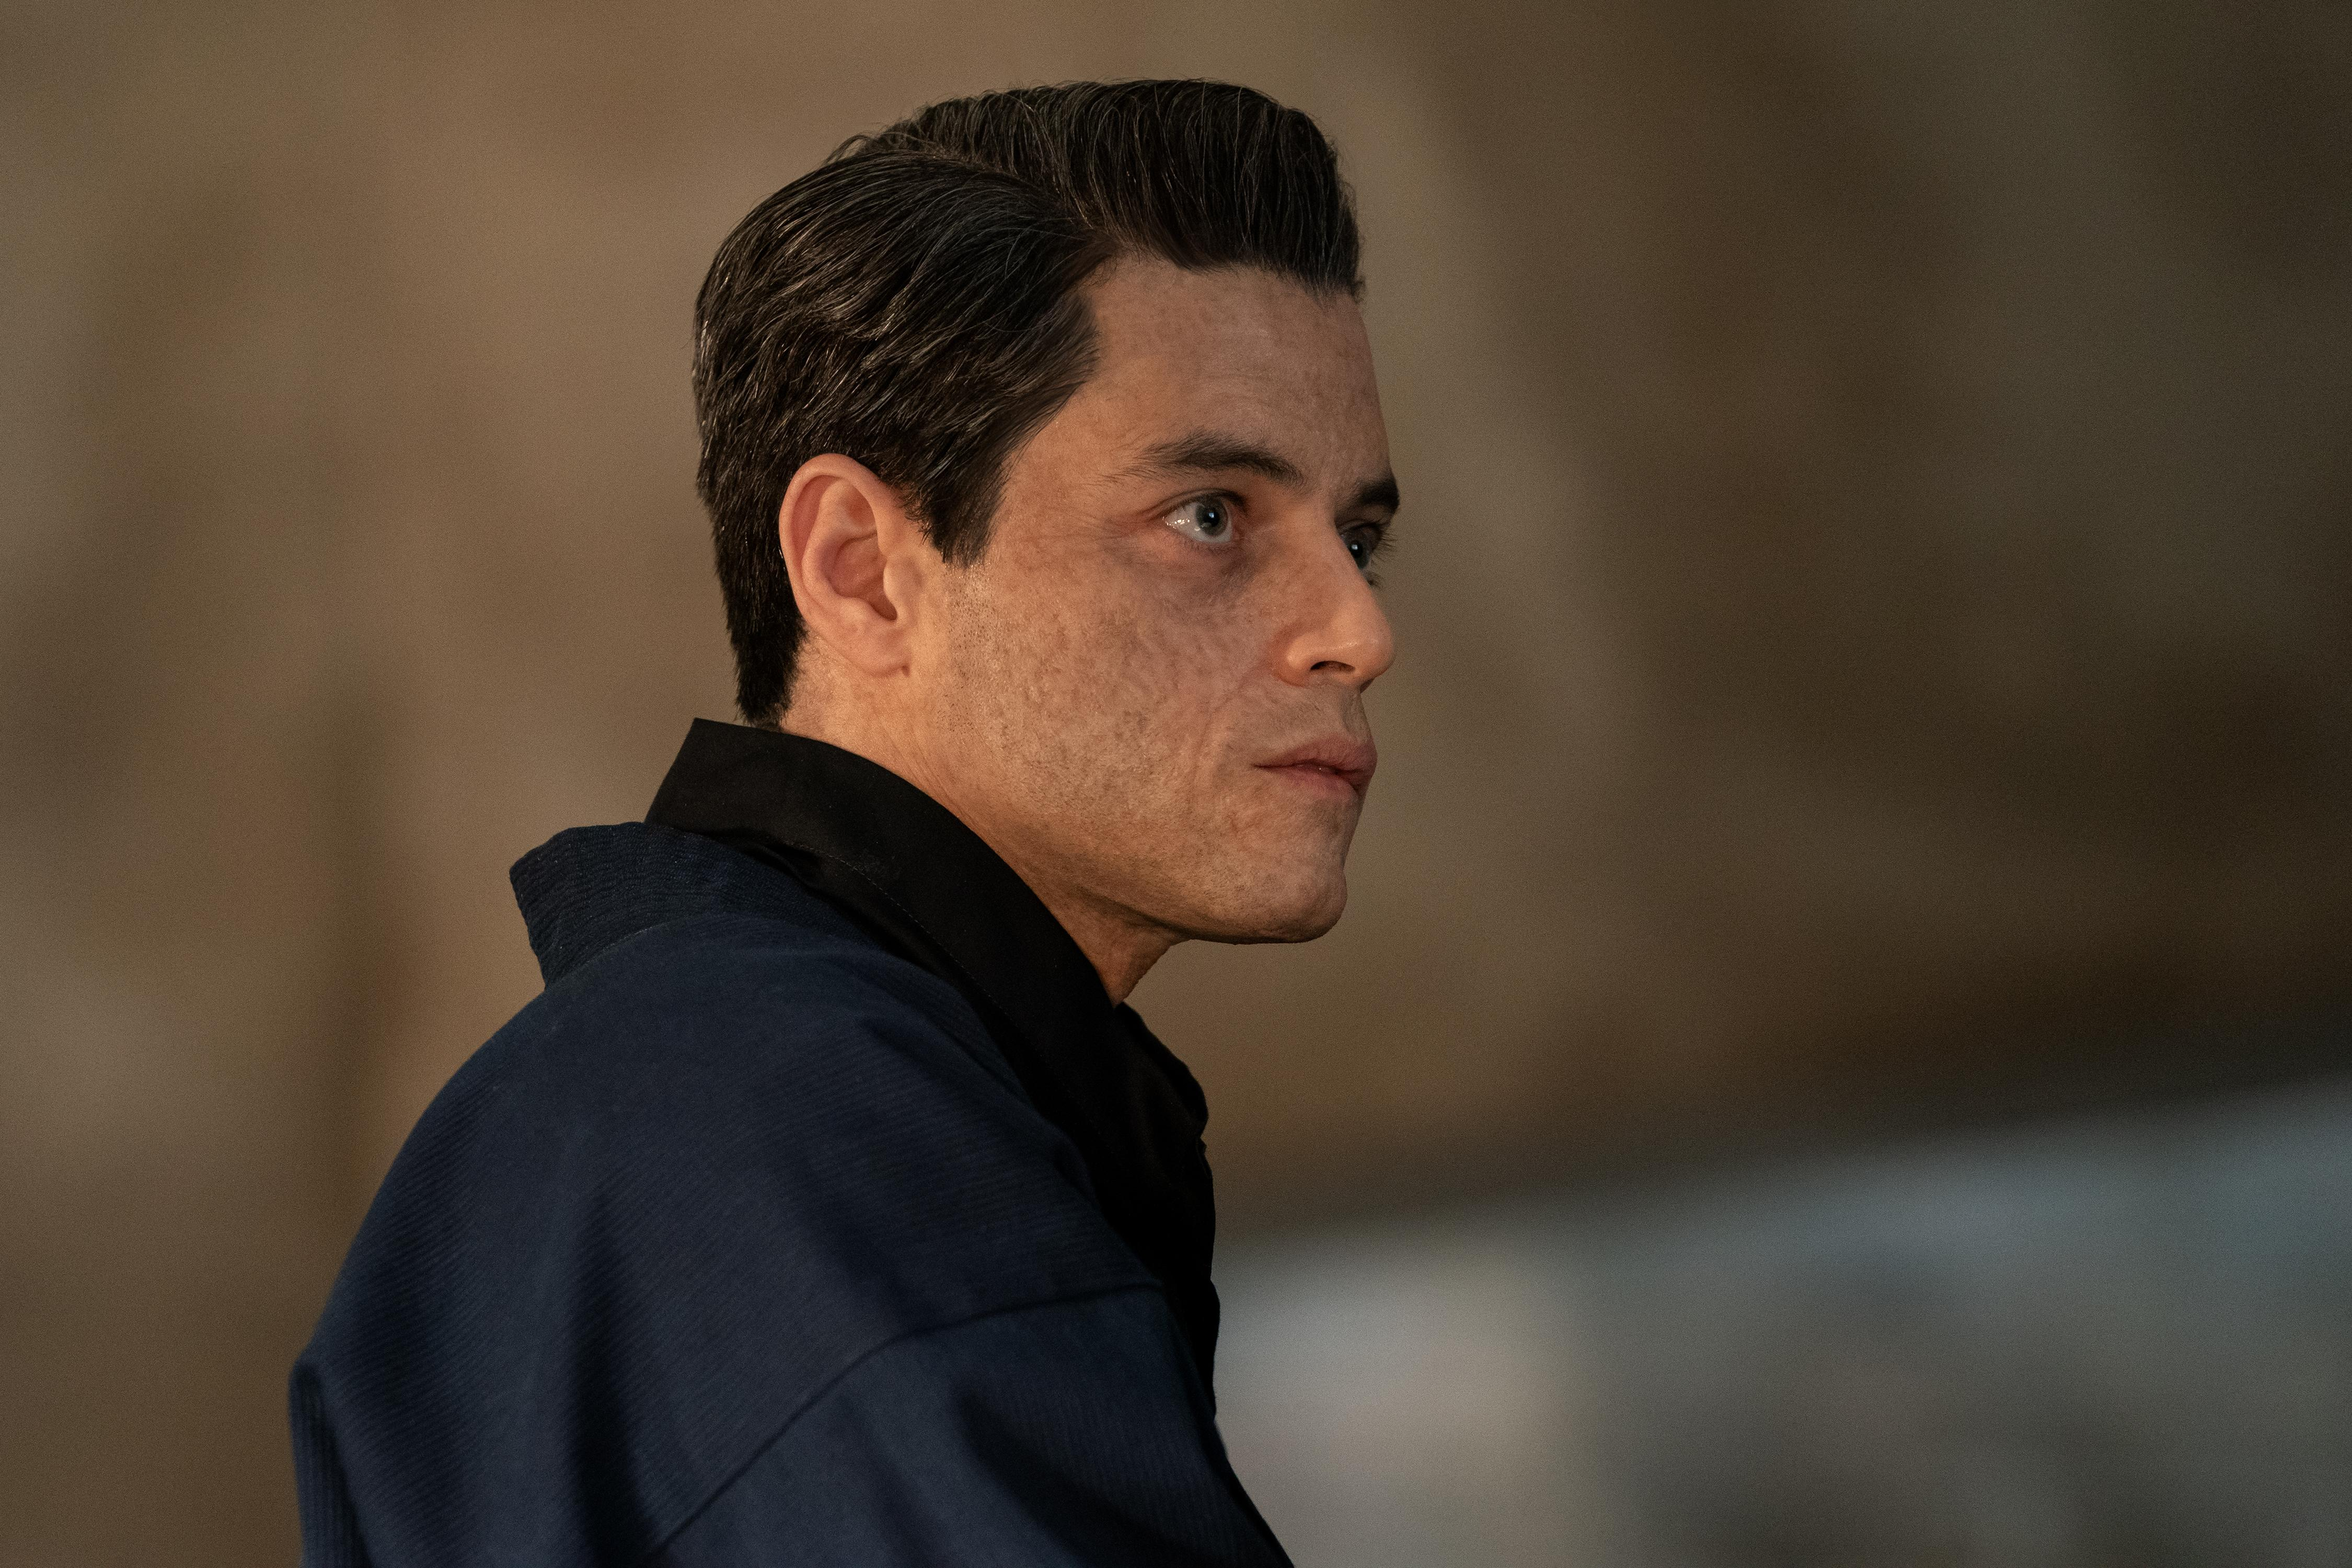 Rami Malek as Safin in 'No Time to Die' (Photo: Nicola Dove/DANJAQ, LLC AND MGM.)